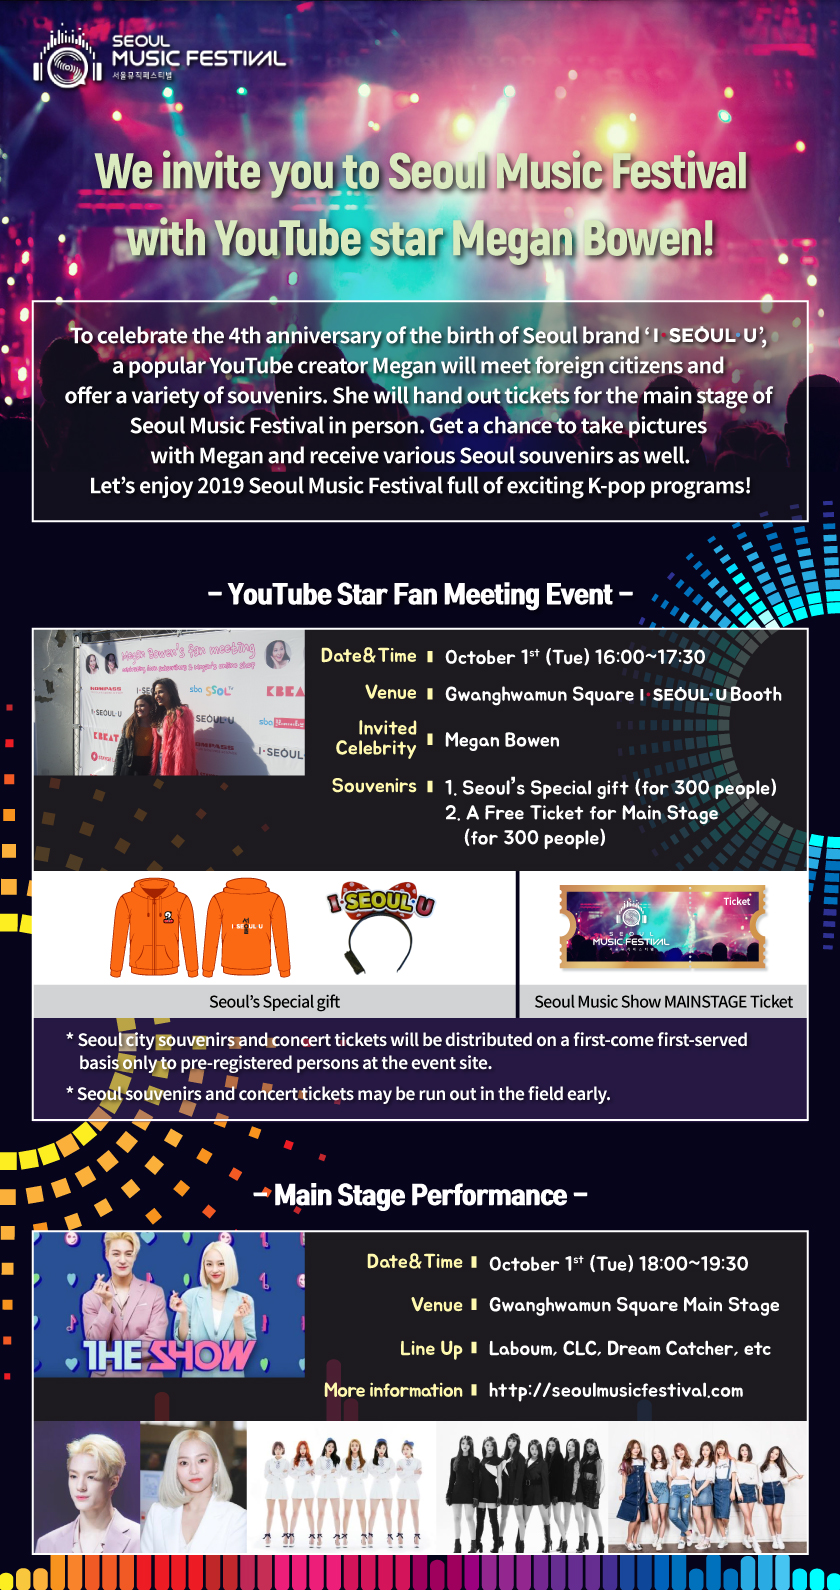 We invite you to Seoul Music Festival with YouTube star Megan Bowen!To celebrate the 4th anniversary of the birth of Seoul brand 'I·SEOUL·U',  a popular YouTube creator Megan will meet foreign citizens and  offer a variety of souvenirs. She will hand out tickets for the main stage of  Seoul Music Festival in person. Get a chance to take pictures  with Megan and receive various Seoul souvenirs as well. Let's enjoy 2019 Seoul Music Festival full of exciting K-pop programs! - YouTube Star Fan Meeting Event - Date&Time October 1st (Tue) 16:00~17:30 Venue Gwanghwamun Square '               Booth Invited Celebrity Megan Bowen Souvenirs 1. Seoul's Special gift (for 300 people) 2. A Free Ticket for Main Stage      (for 300 people) Seoul's Special gift Seoul Music Show MAINSTAGE Ticket * Seoul city souvenirs and concert tickets will be distributed on a first-come first-served      basis only to pre-registered persons at the event site. * Seoul souvenirs and concert tickets may be run out in the field early. - Main Stage Performance - Date&Time October 1st (Tue) 18:00~19:30 Venue Gwanghwamun Square Main Stage Line Up Laboum, CLC,  Dream Catcher, ETC More information http://seoulmusicfestival.com